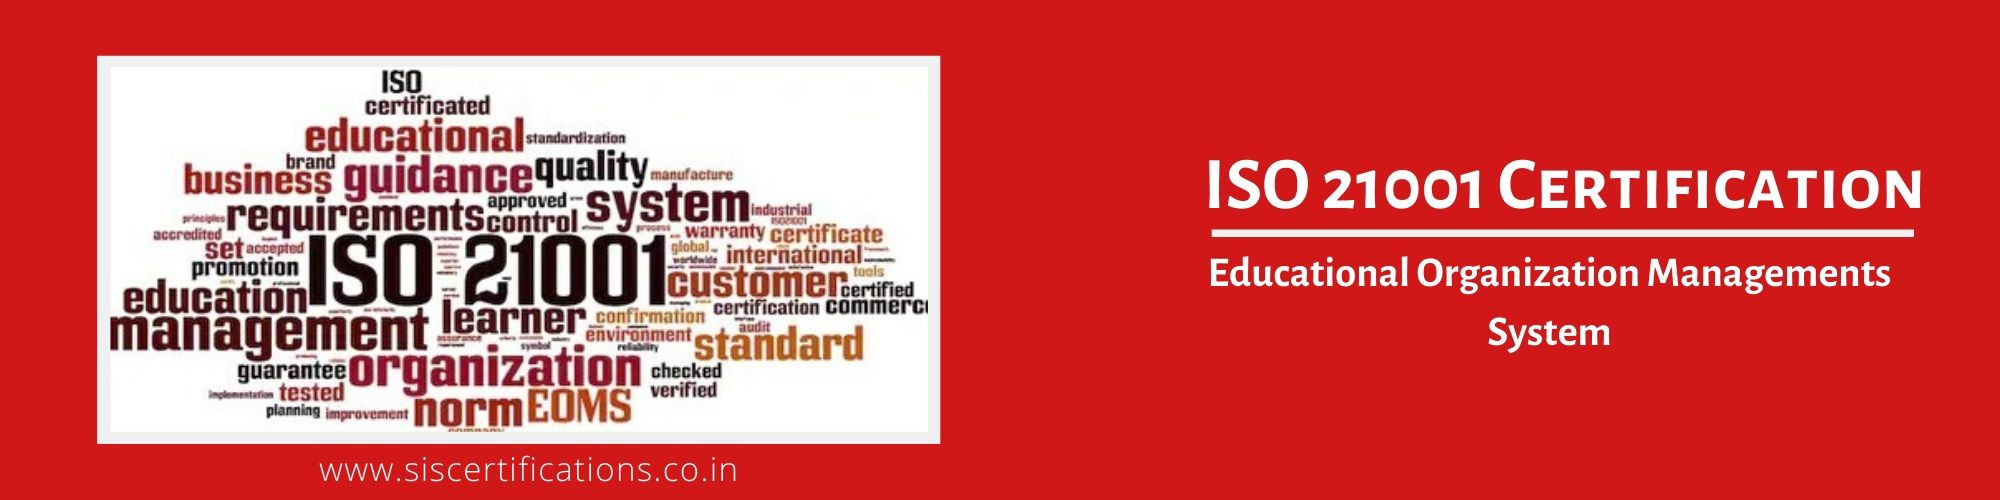 ISO 21001 Certification, ISO 21001 Certification